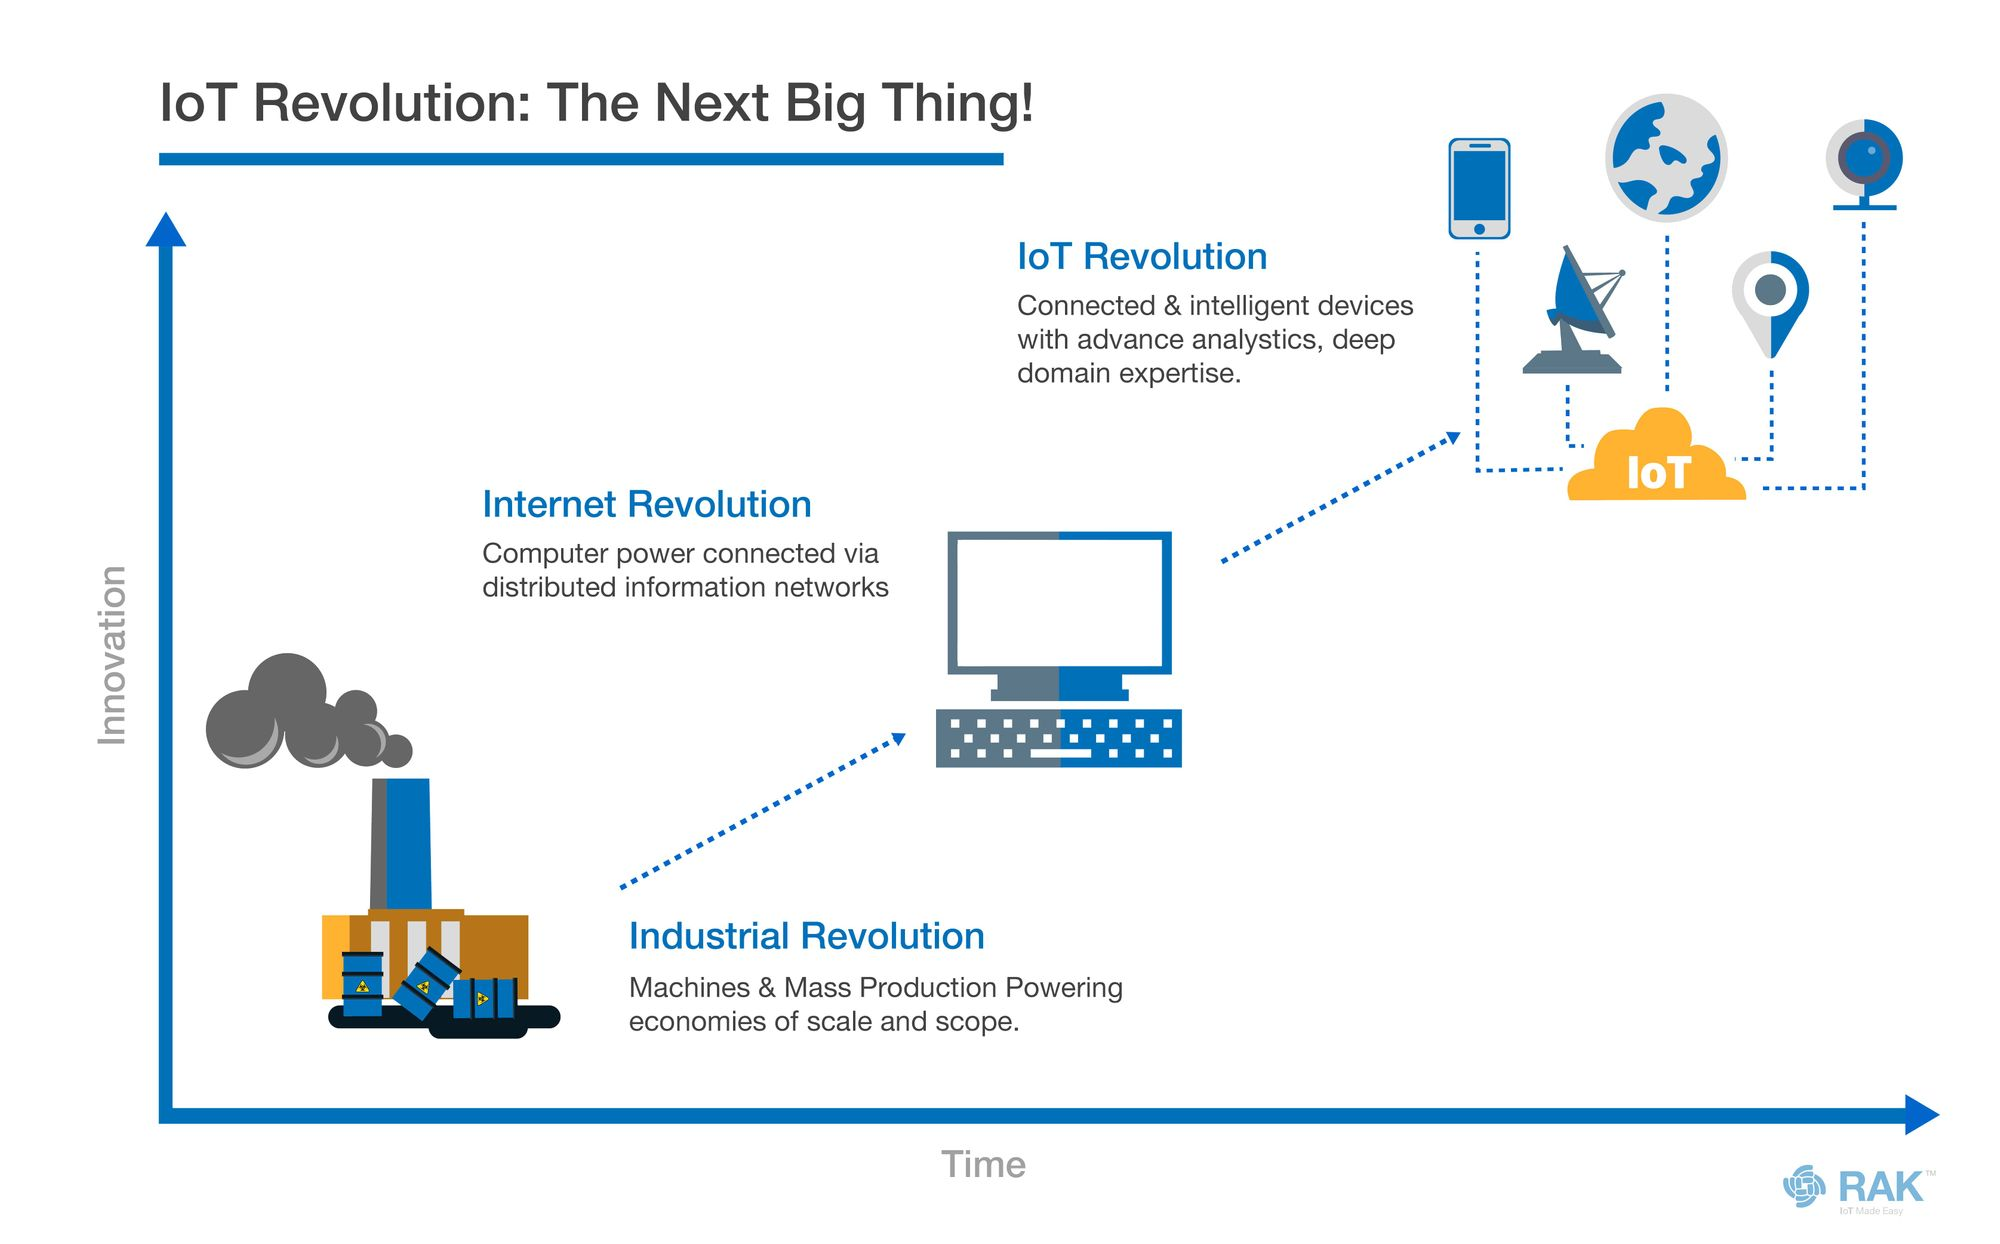 Why IoT is New Big Thing